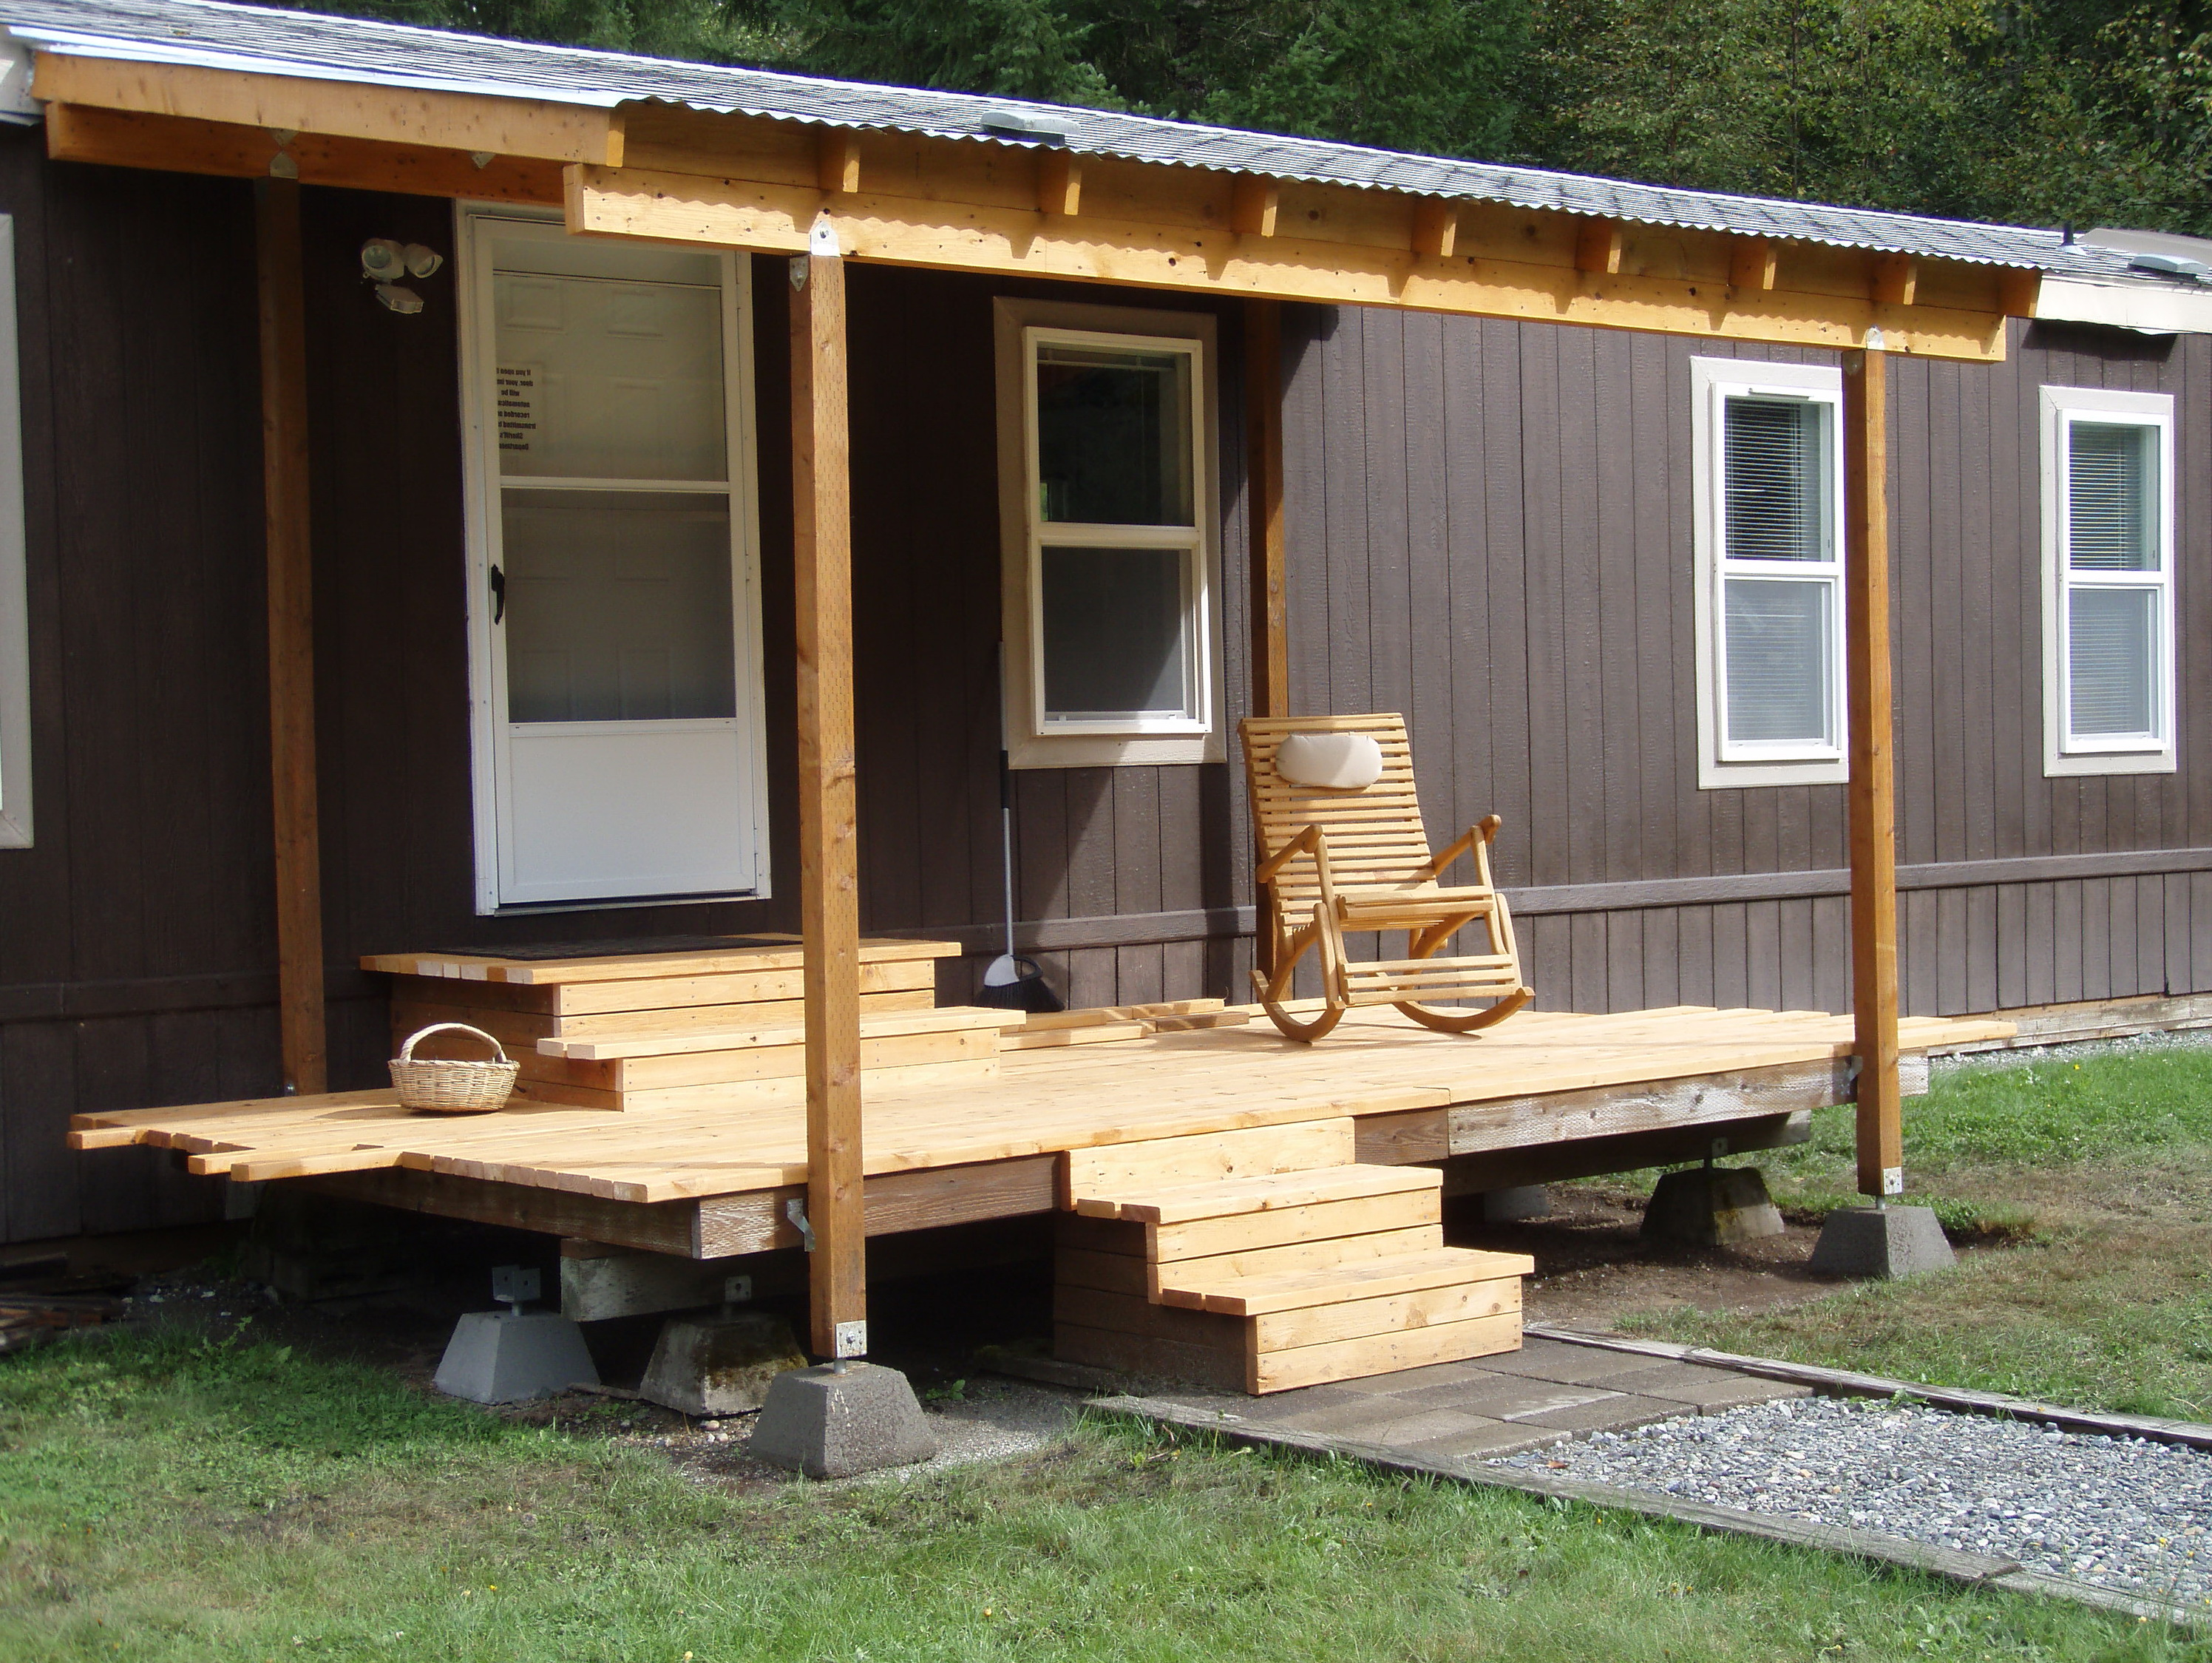 Mobile Home Porches | Mobile Home Entrance Steps | Mobile Home Porch Ideas